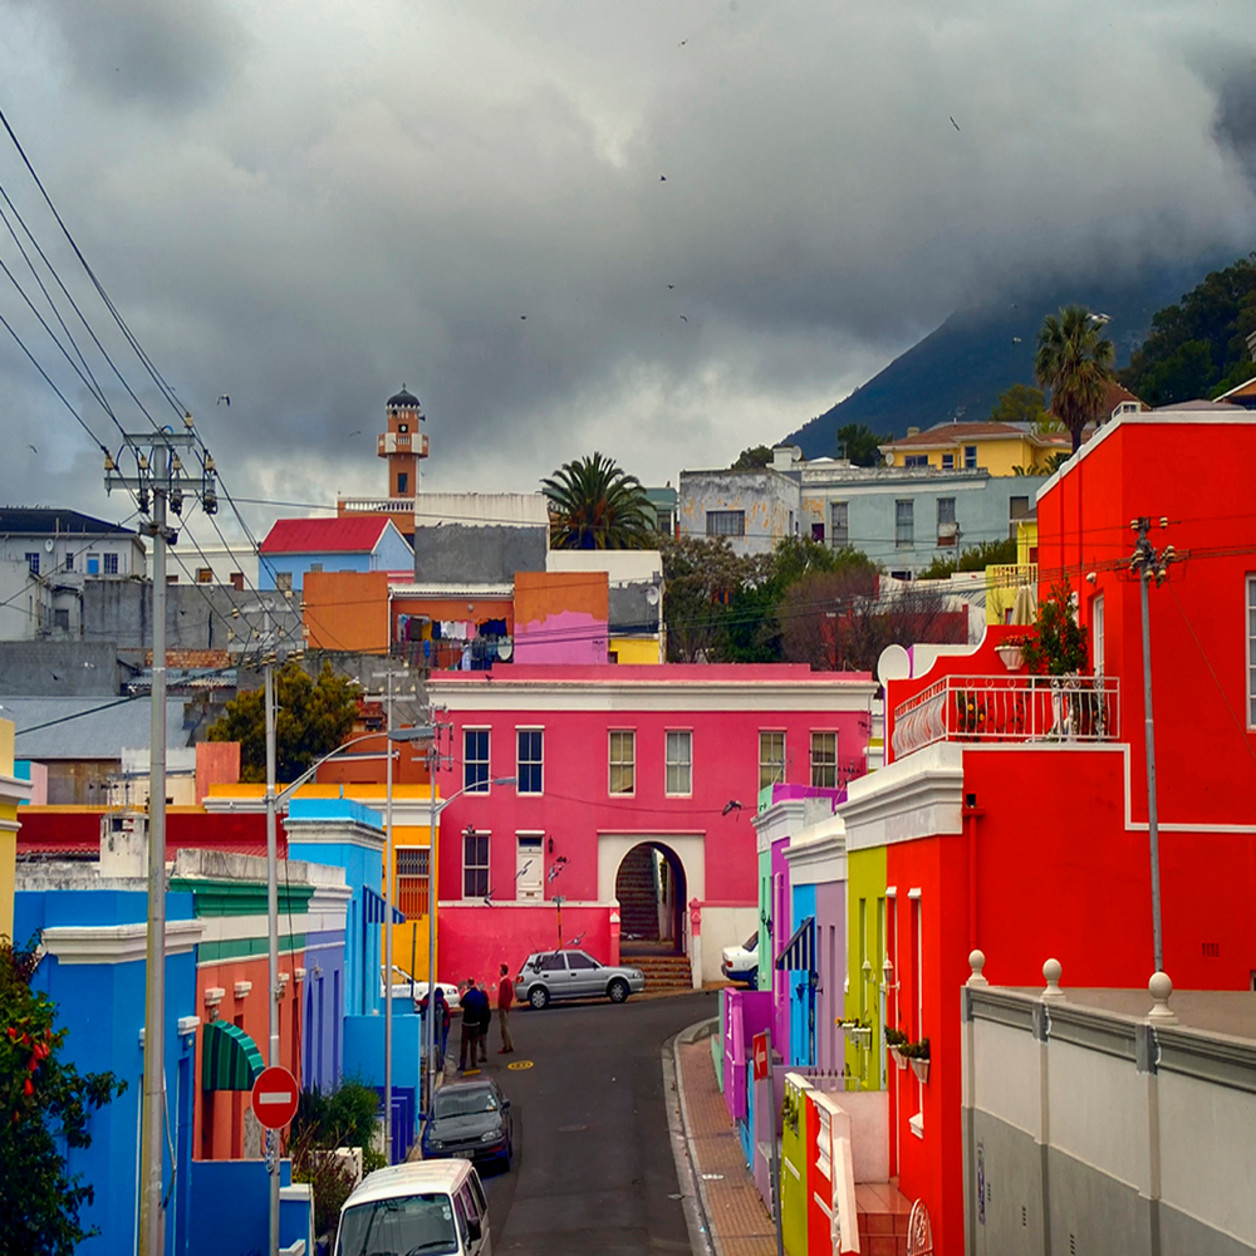 20496930 stephenmimms bo kaap photography 16x20 500 z33cbs